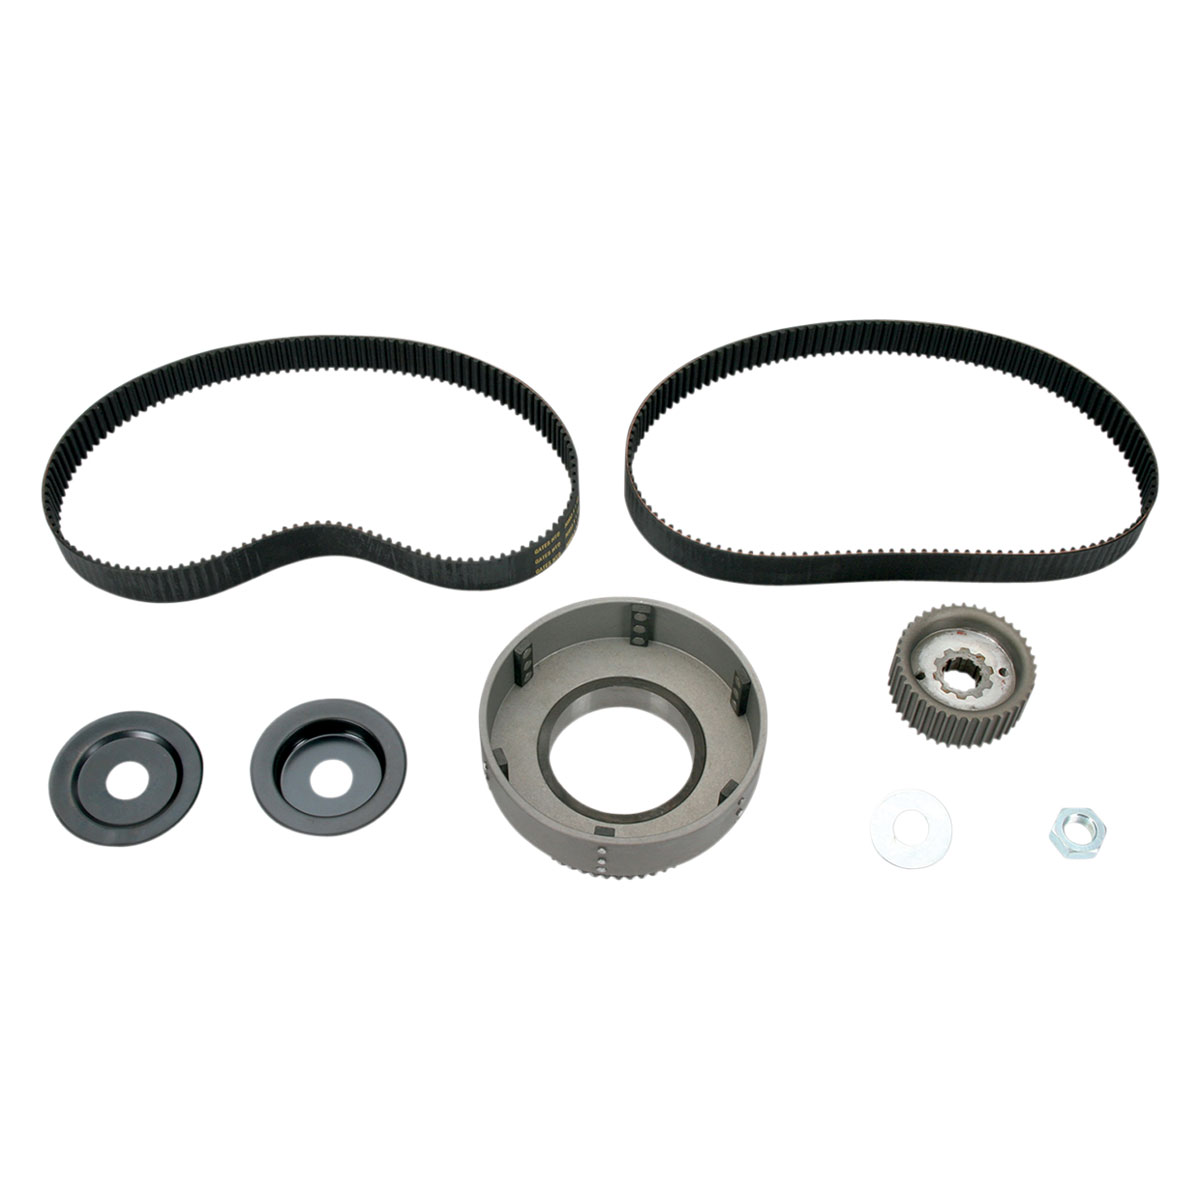 BDL 8mm 1-1/2″ Kit for Kick Start